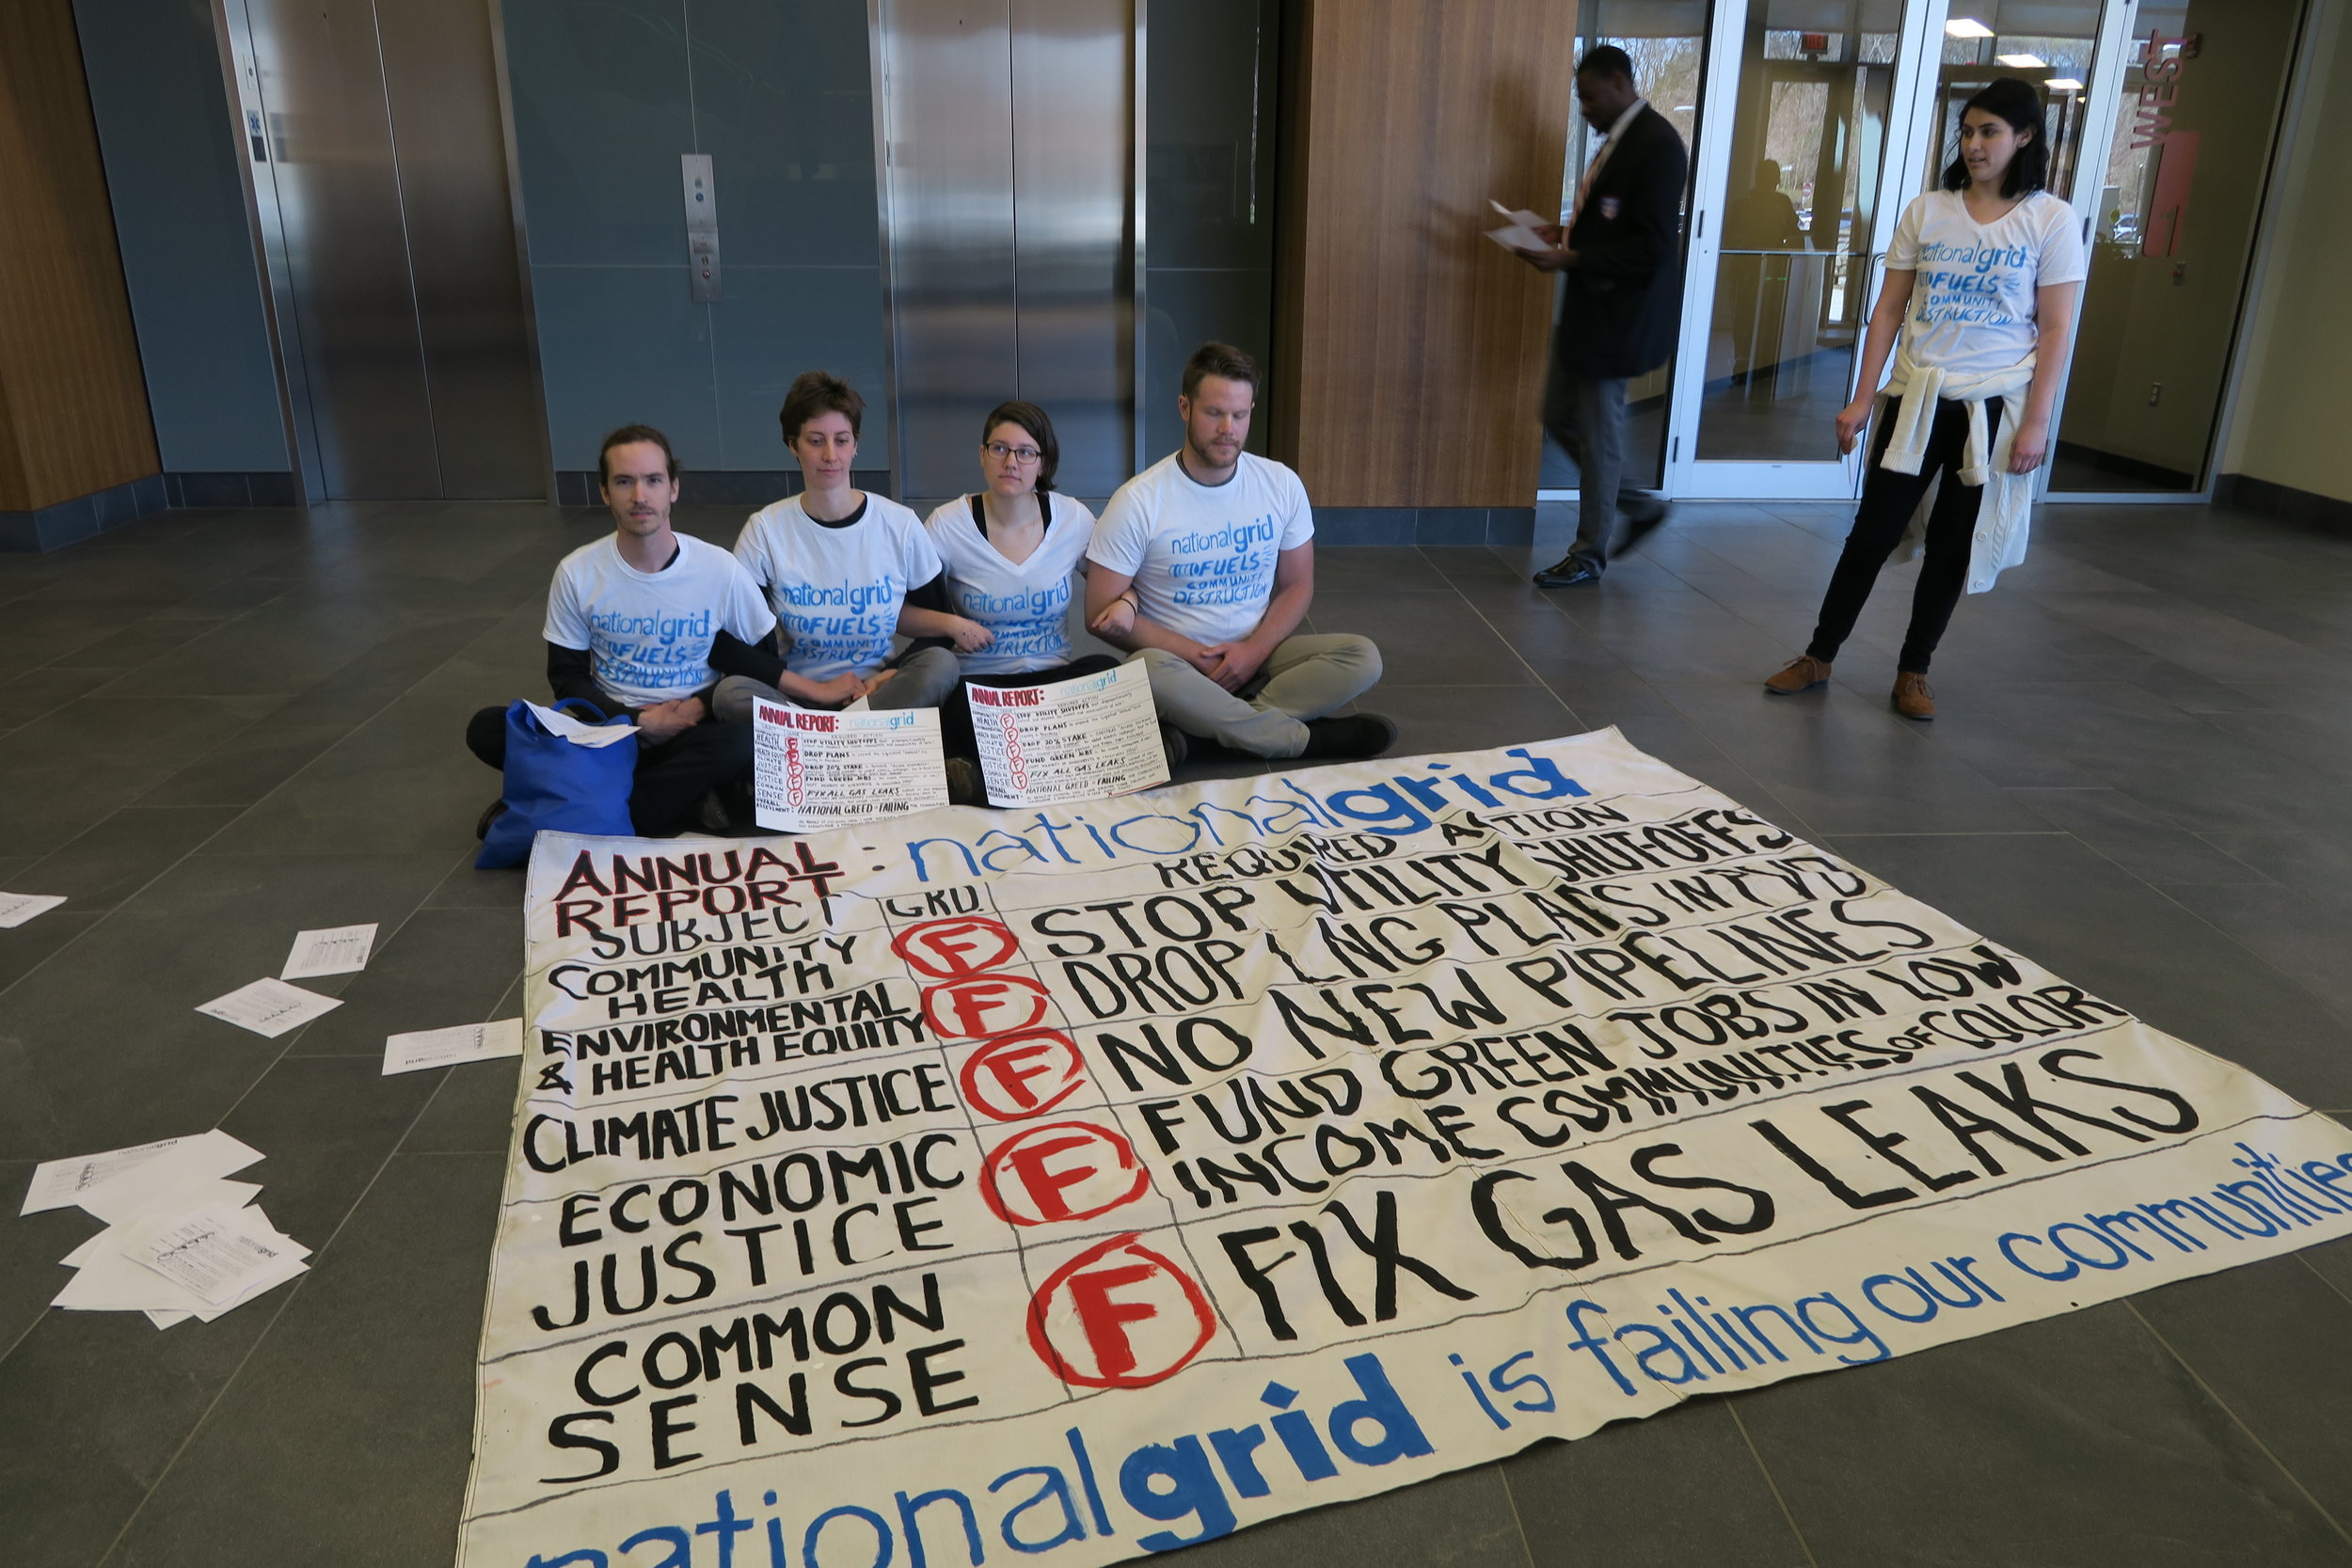 image description: 4 people with their arms linked sitting on the floor of National Grid's headquarters in Waltham, MA with a large fabric banner that replicates an annual report - failing National Grid in the areas of community health, environmental & health equity, climate justice, economic justice, and common sense.